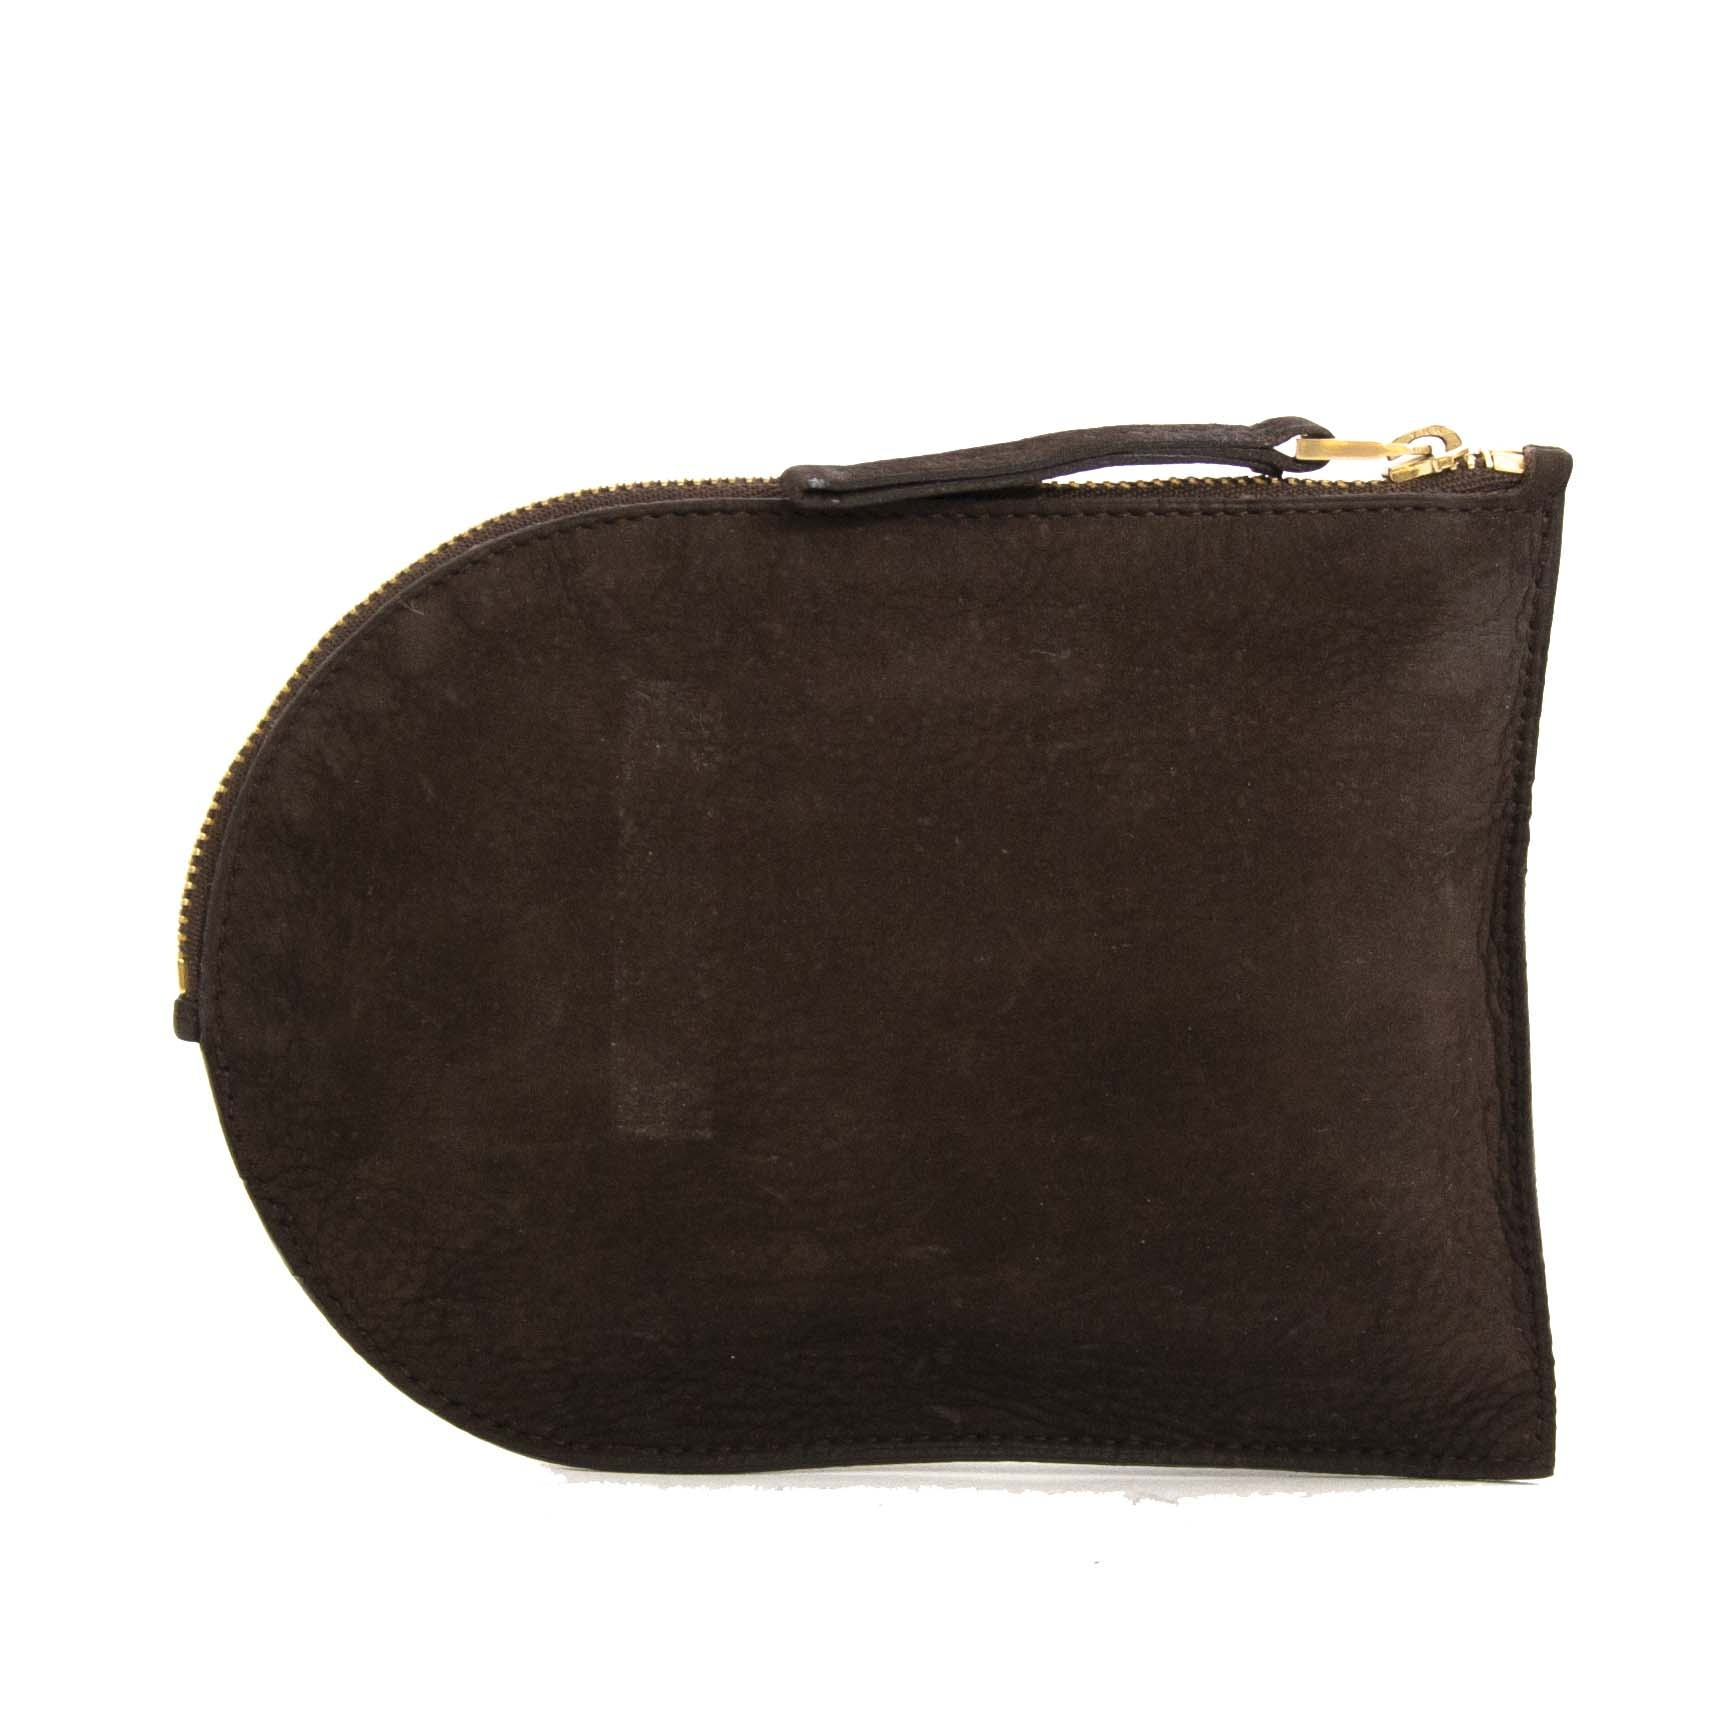 delvaux suede brown d pouch now for sale at labellov vintage fashion webshop belgium